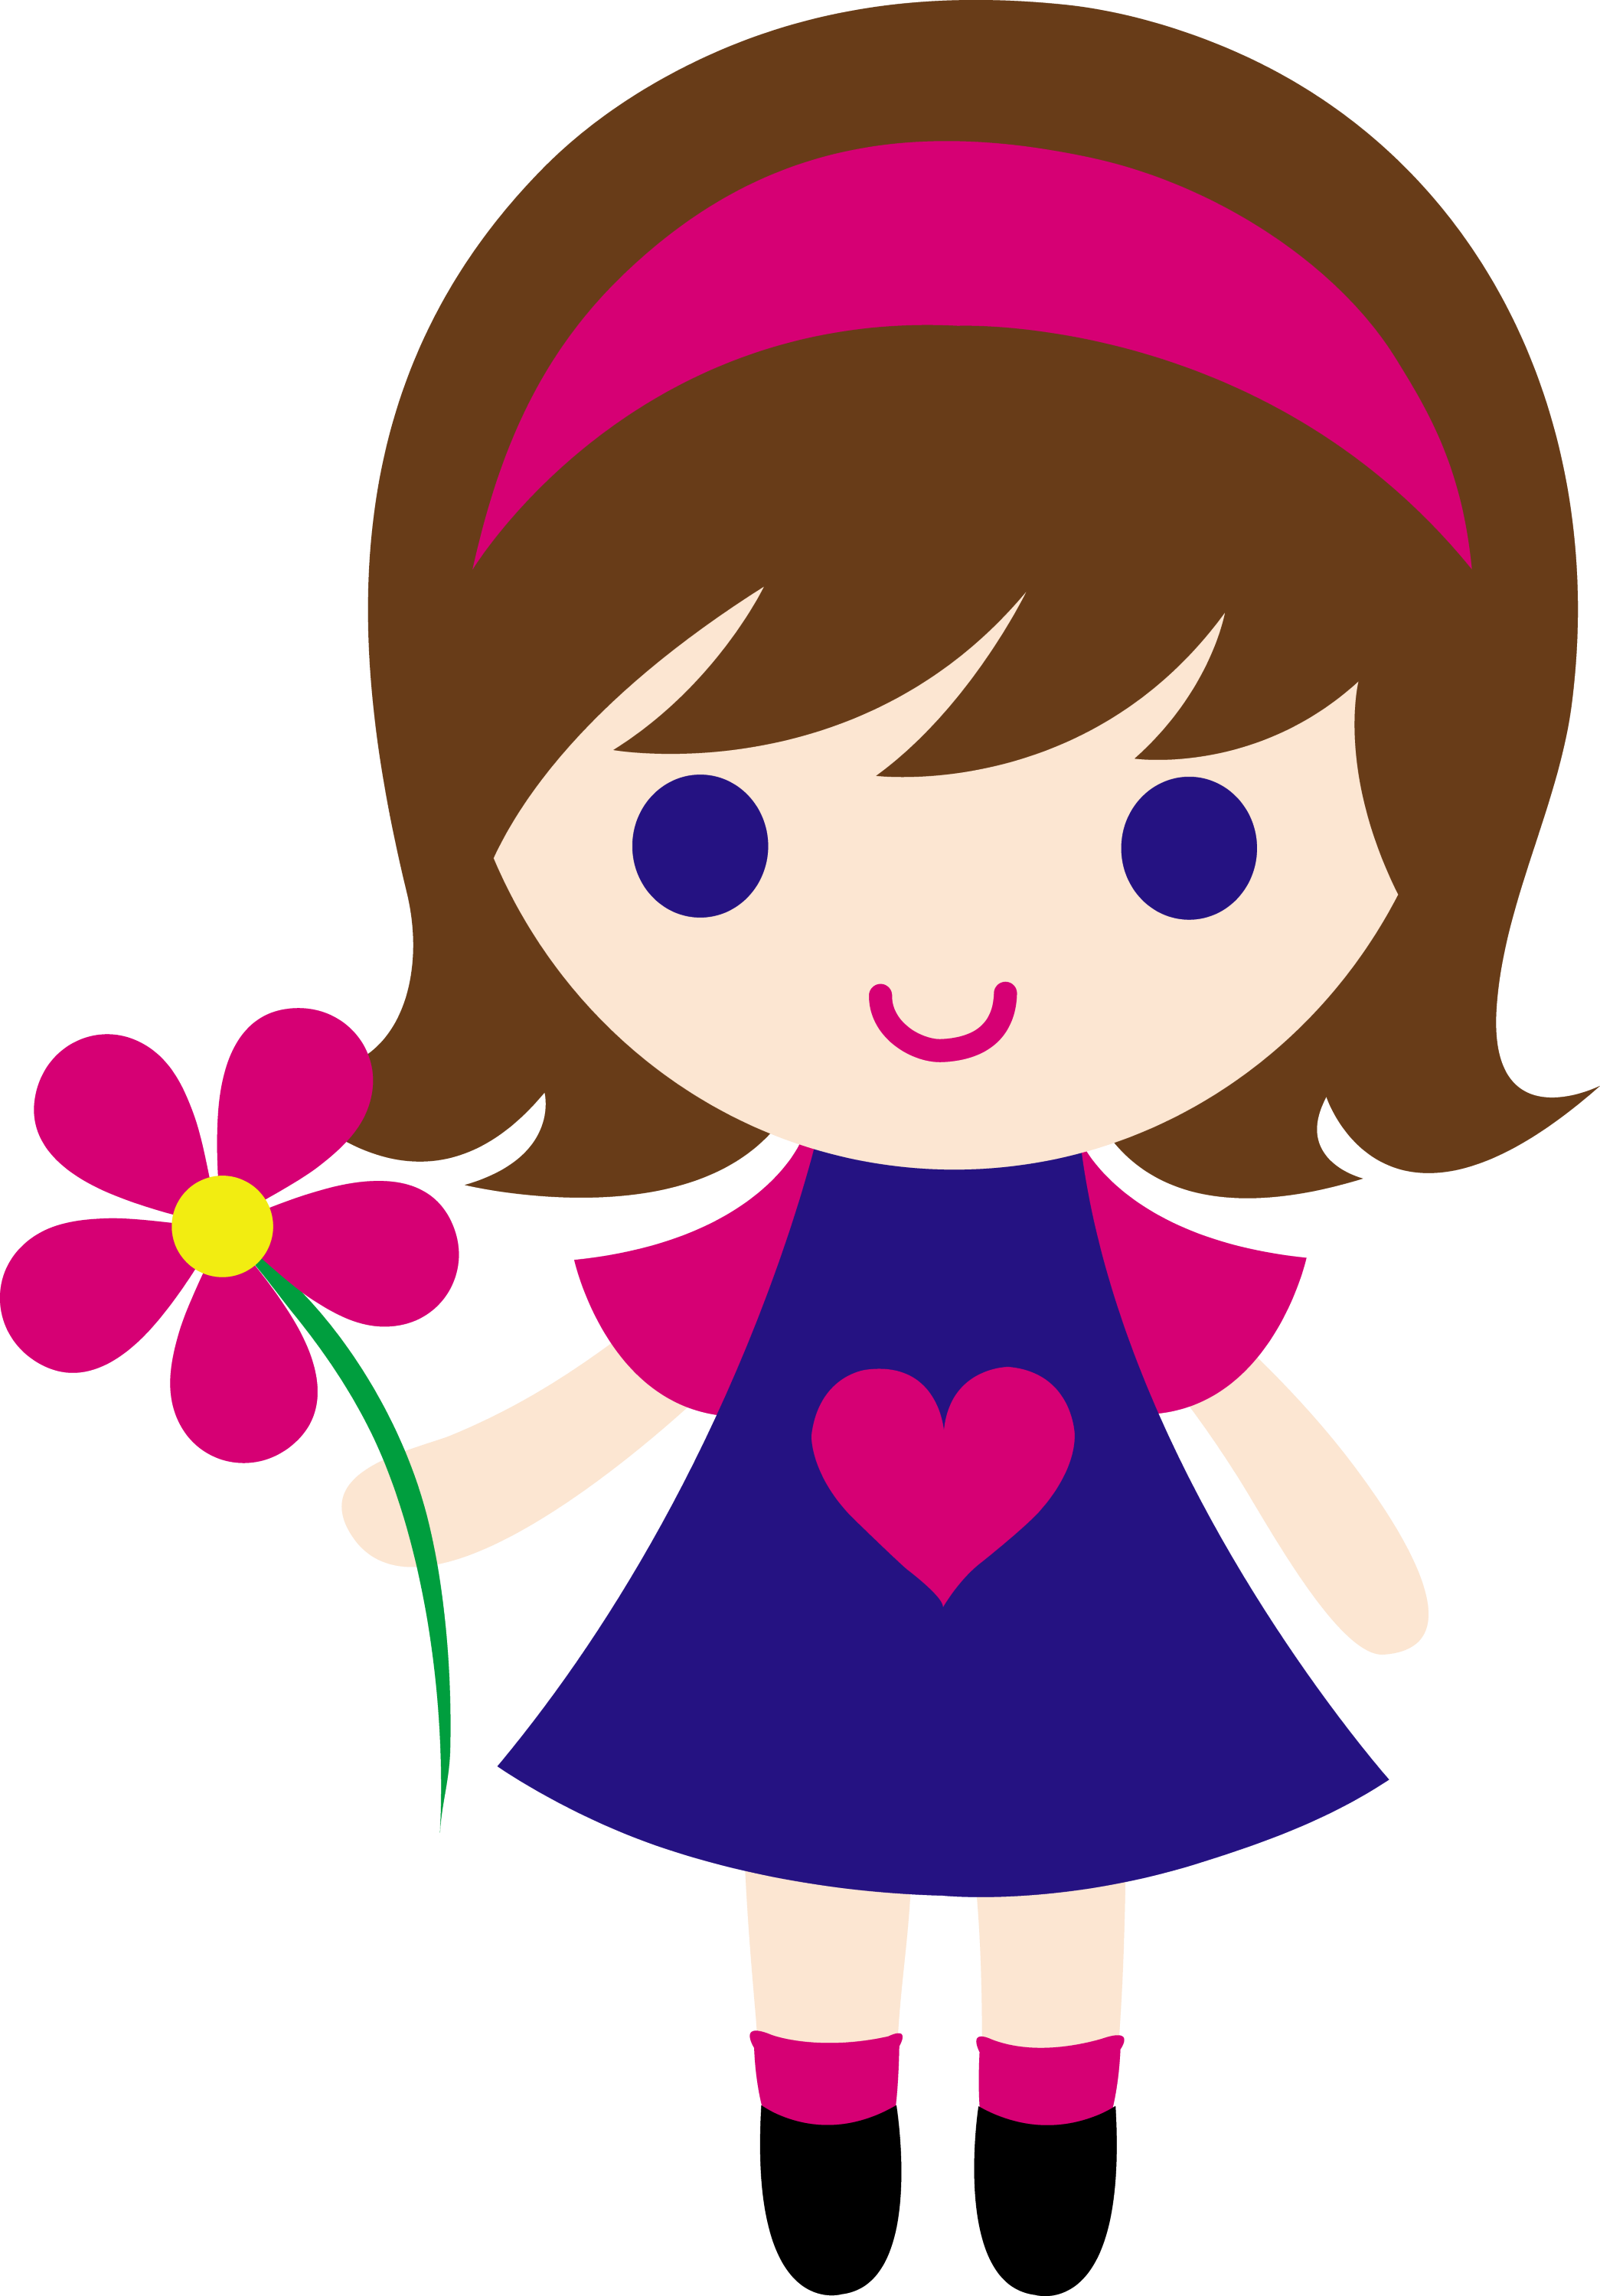 little girl clipart images - photo #1